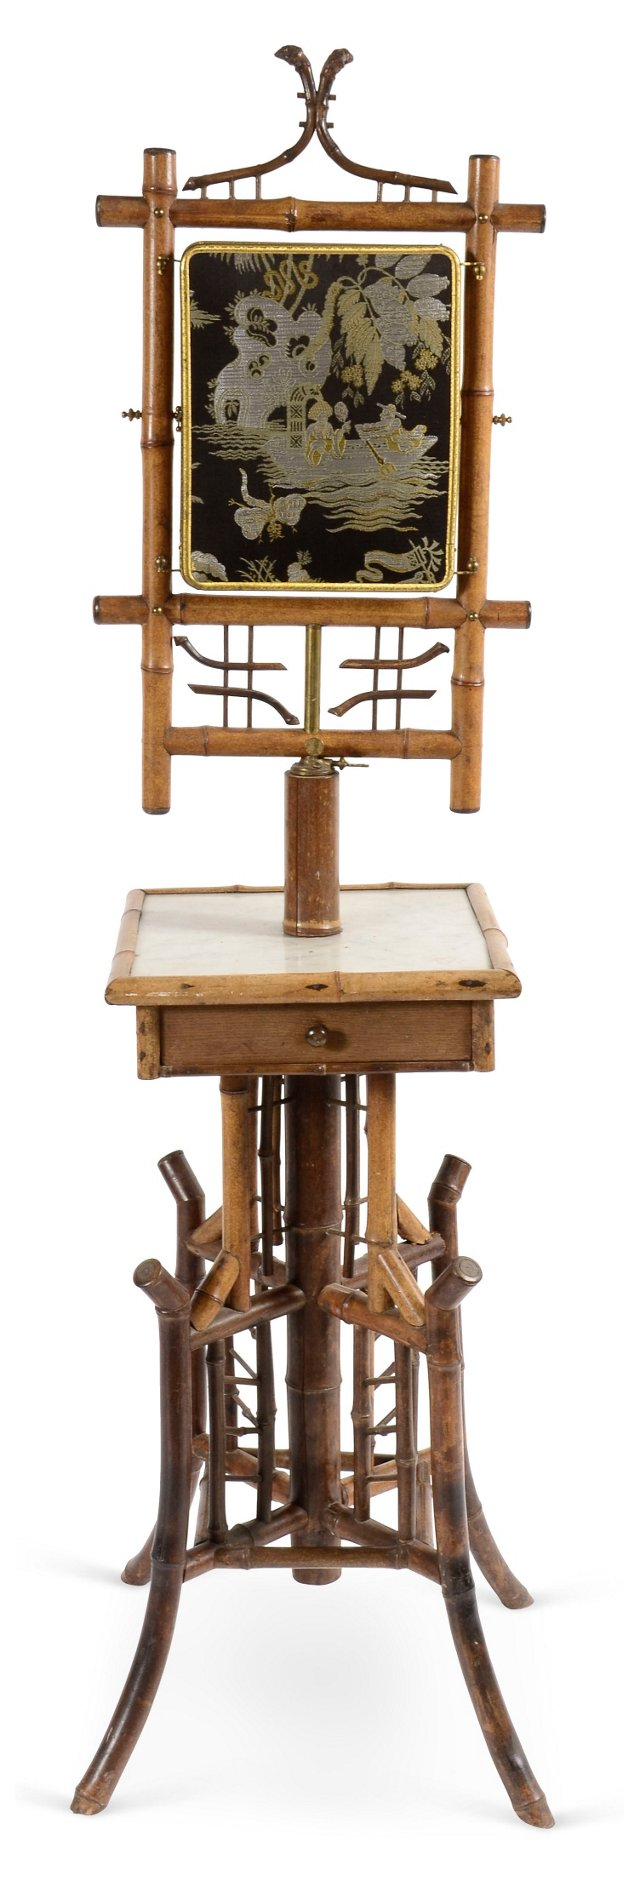 19th-C. Bamboo Shaving Stand